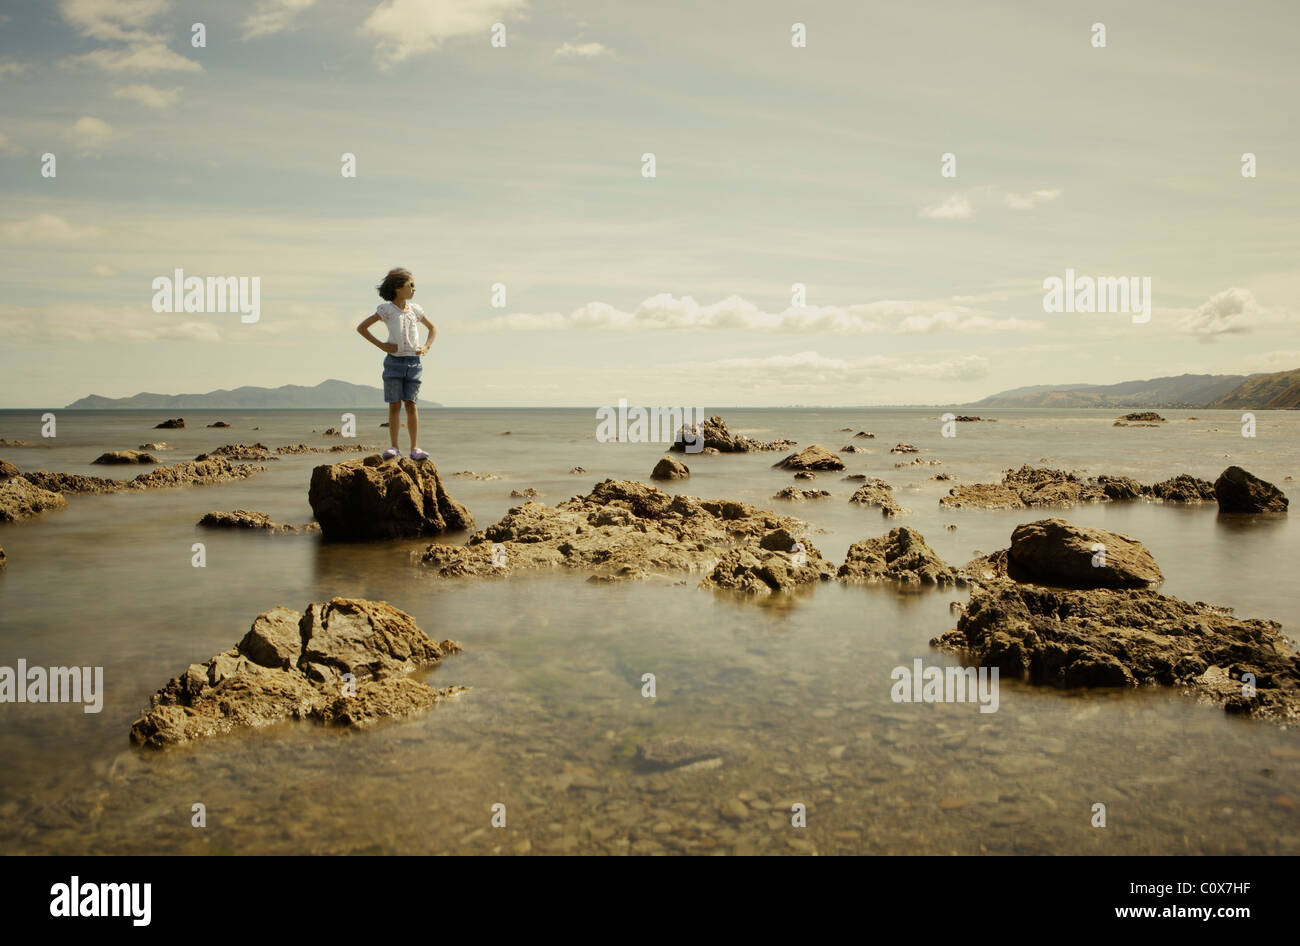 Girl on the rocks. Sea blur from combined exposures. - Stock Image